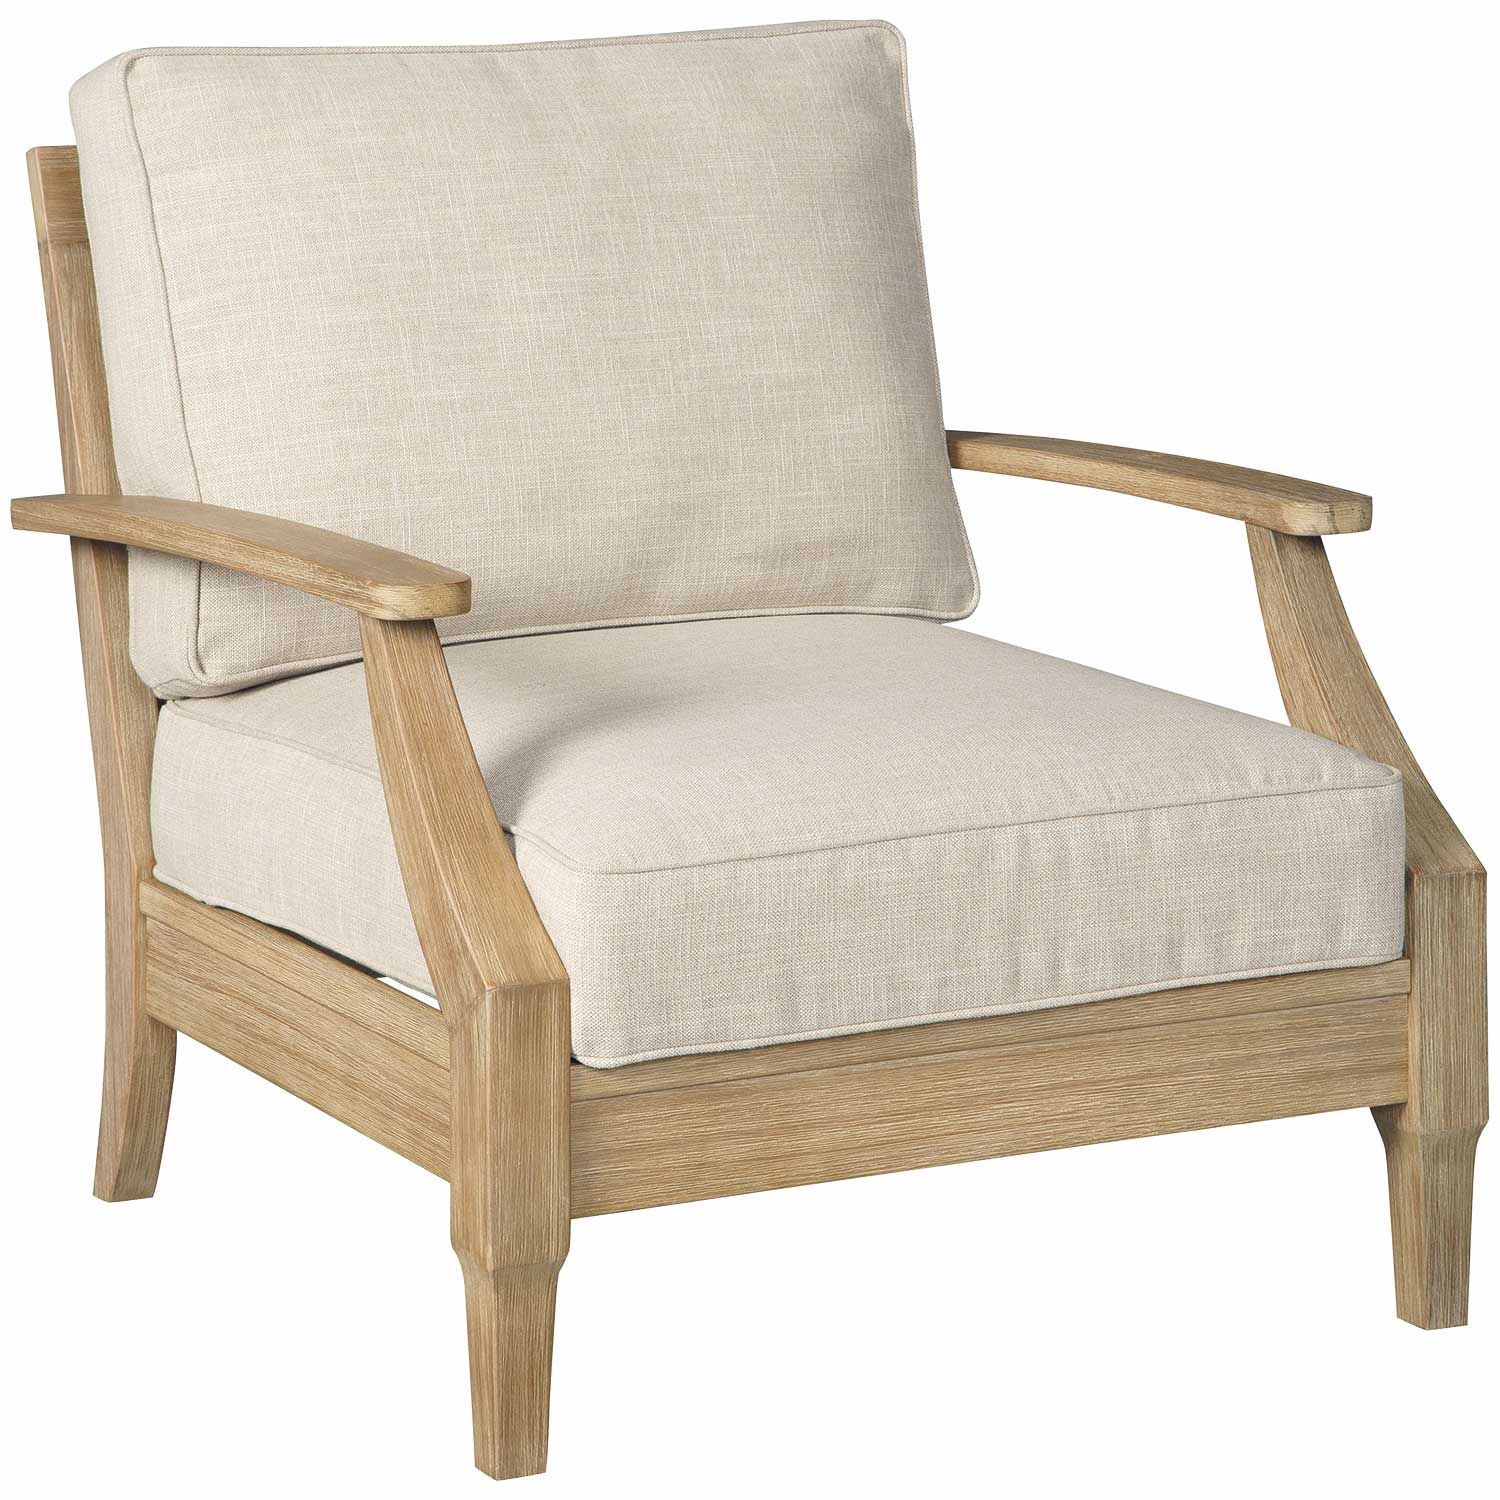 Clare View Outdoor Lounge Chair